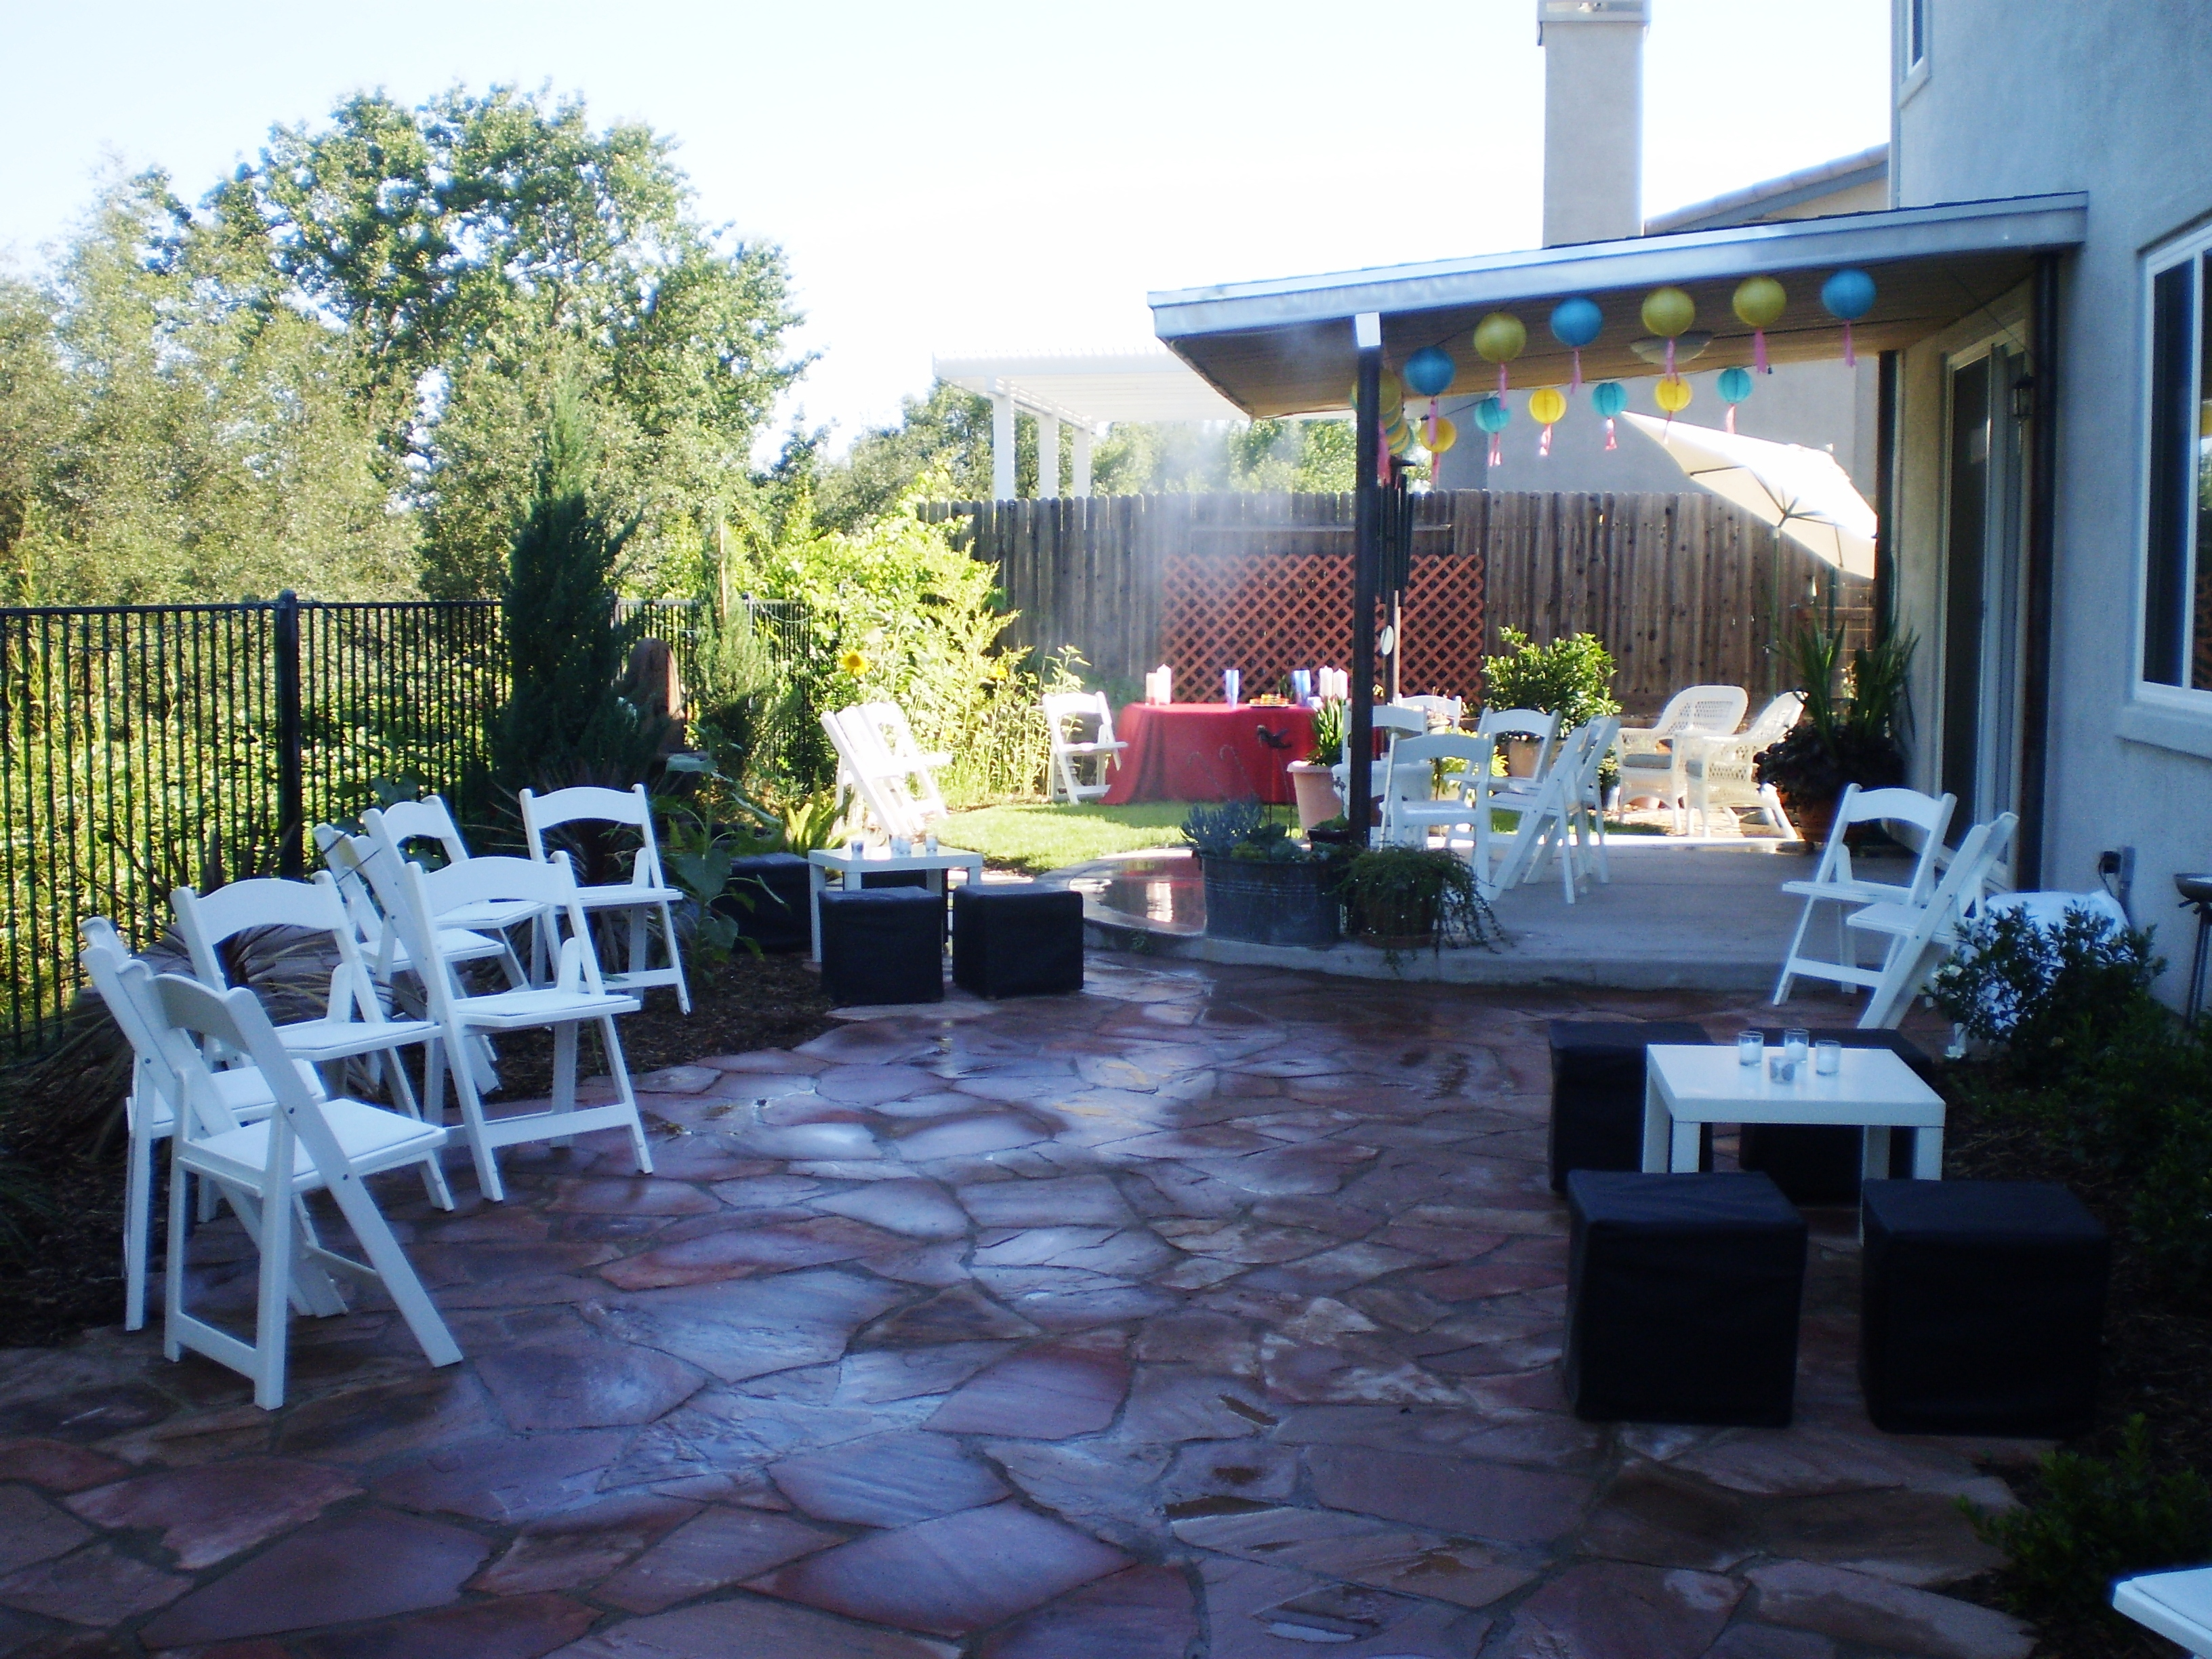 Elegant Backyard Engagement Party Ideas : The Bewildered BridetoBe Engagement Parties  Catrina Maria Event